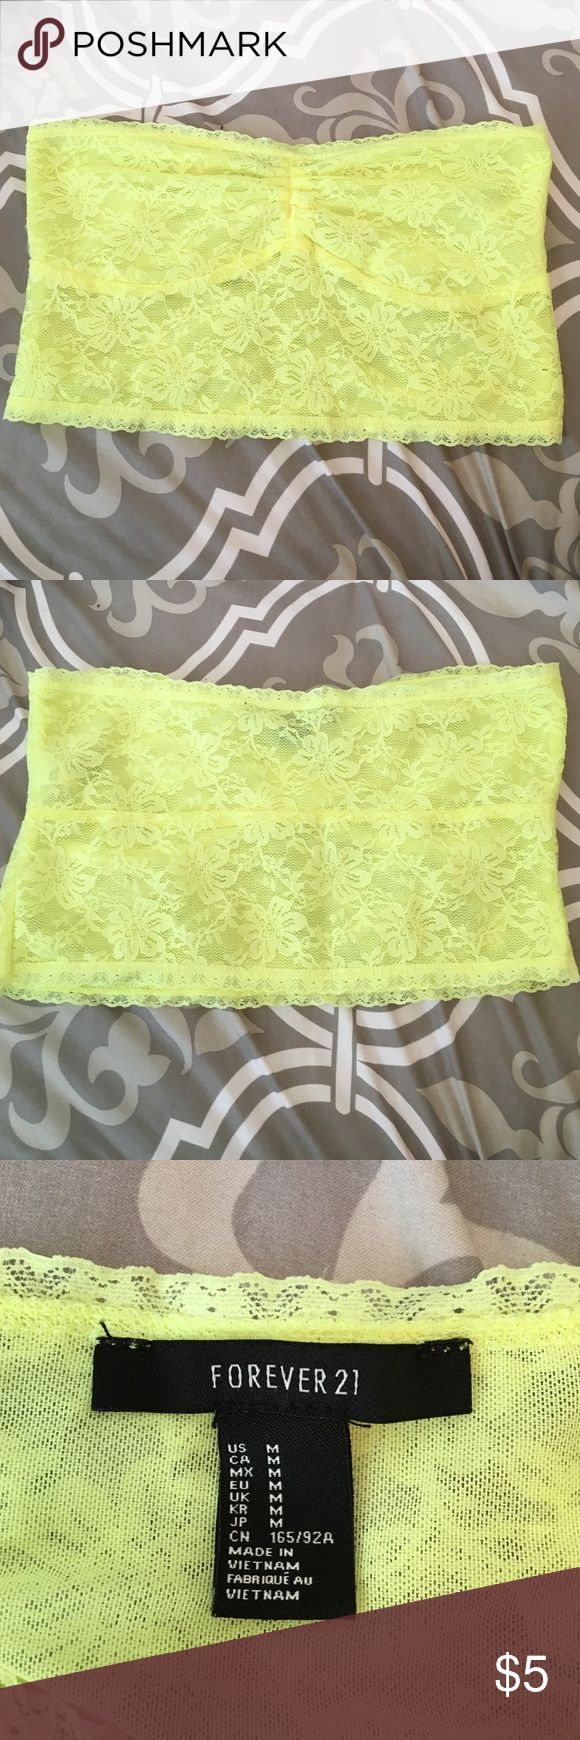 Neon yellow bandeau medium forever 21 Neon yellow forever 21 bandeau size medium Forever 21 Tops